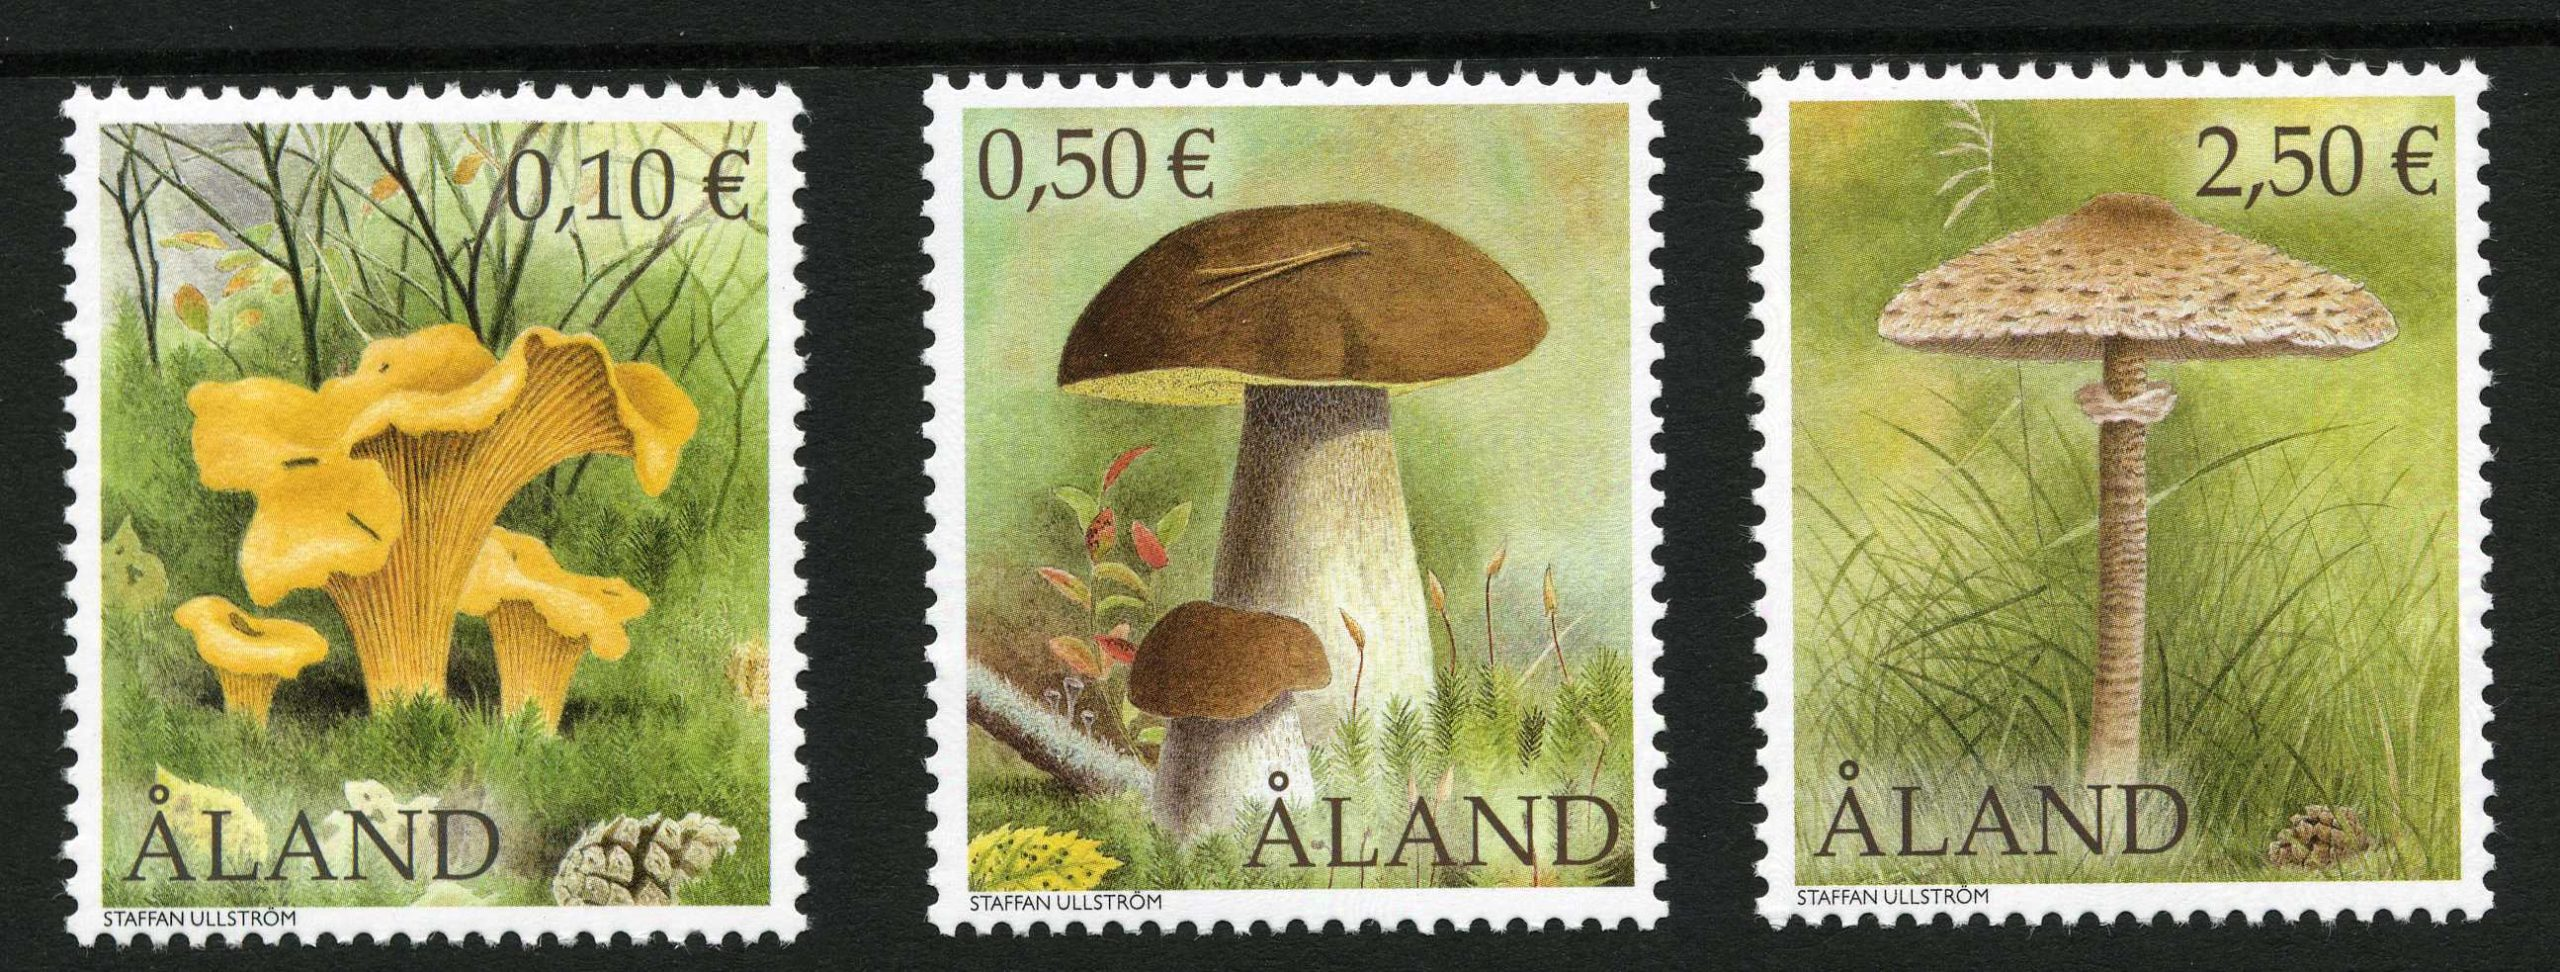 timbres_021